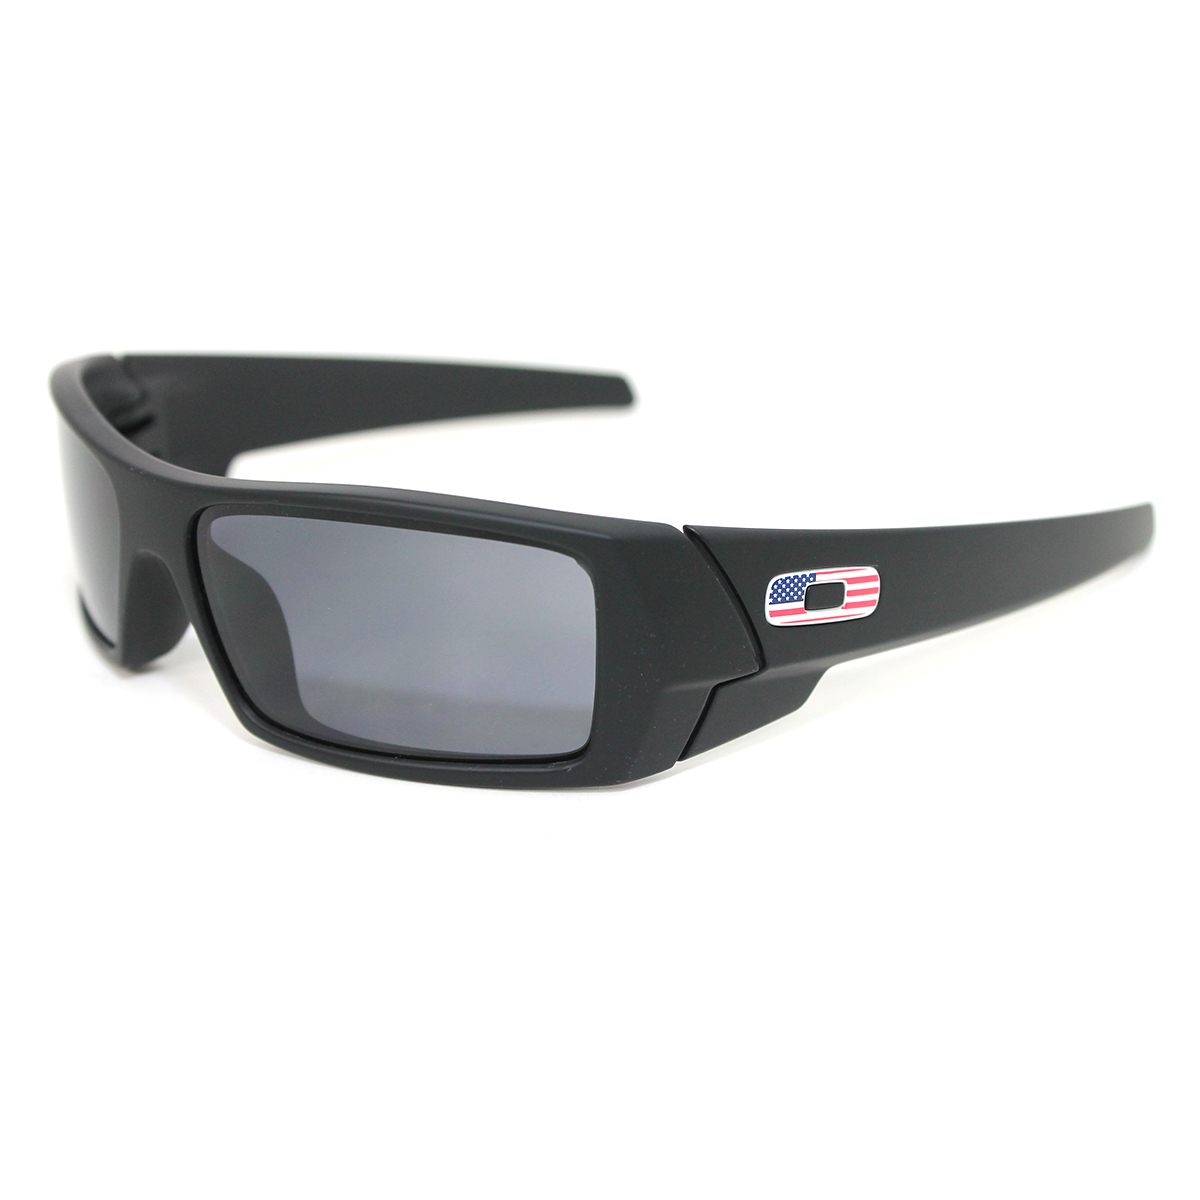 575714afd6 usa oakley batwolf icons for sale 3beaa ebd91  where can i buy oakley si  gascan military sunglasses with us flag icon matte black grey